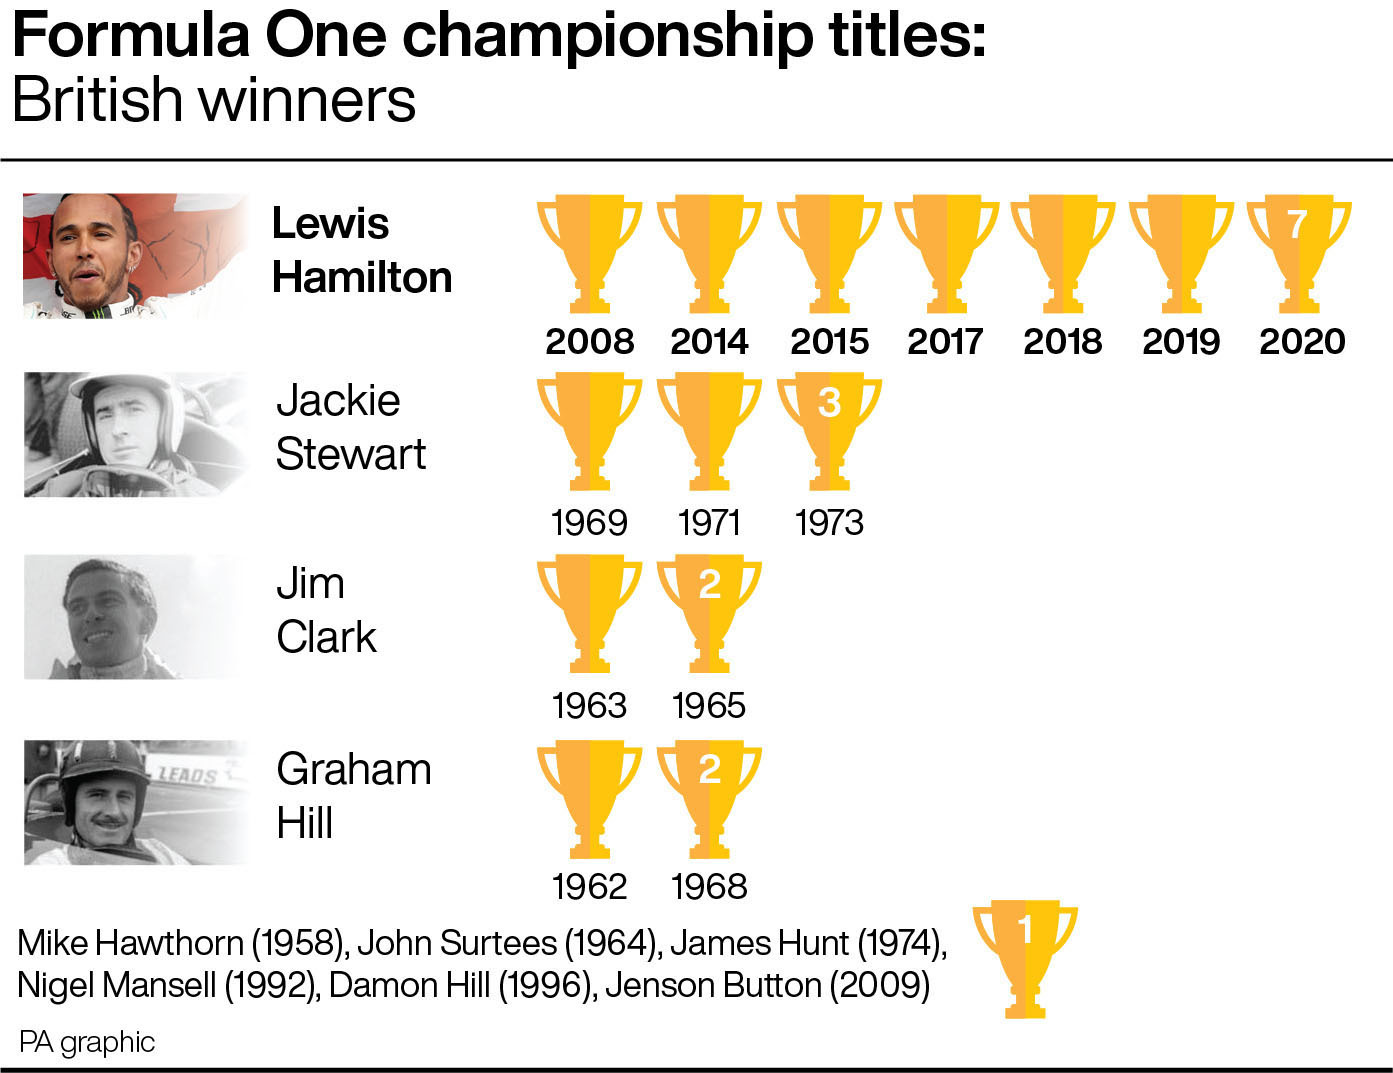 A graphic of British F1 title winners